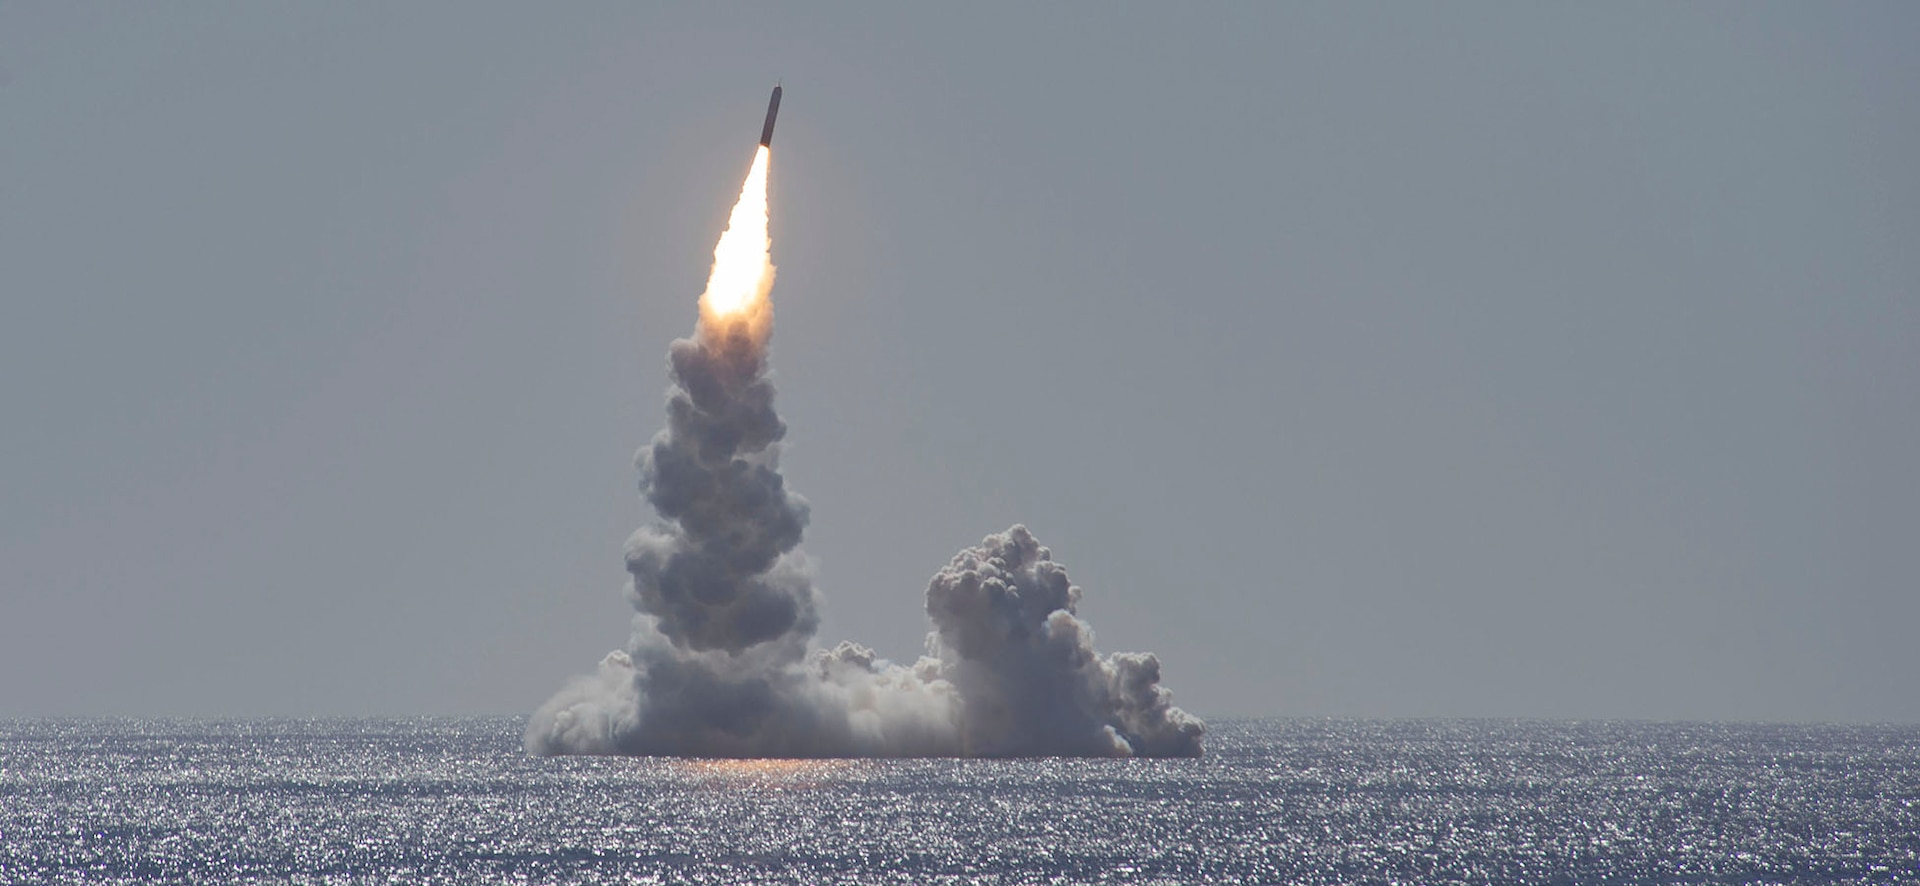 An unarmed Trident II (D5LE) missile launches from the Ohio-class ballistic missile submarine USS Maine (SSBN 741) off the coast of San Diego, California, Feb. 12, 2020. The test launch was part of the U.S. Navy Strategic Systems Programs' demonstration and shakedown operation certification process. The successful launch demonstrated the readiness of the SSBN's strategic weapon system and crew following the submarine's engineered refueling overhaul. This launch marks 177 successful missile launches of the Trident II (D5 & D5LE) strategic weapon system.